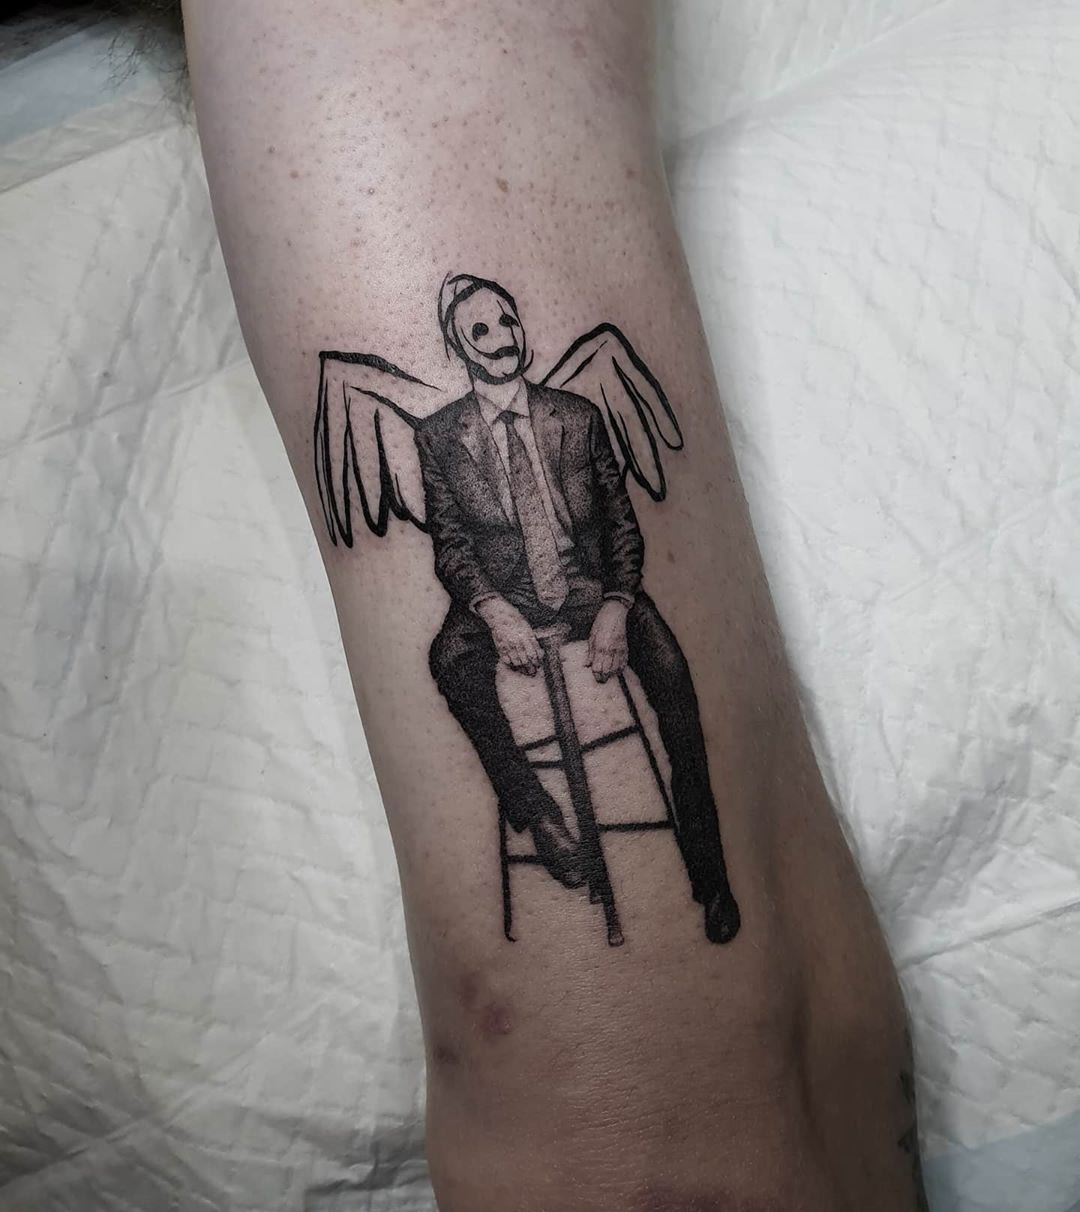 Man with wings sitting on chair tattoo by Breakkytime